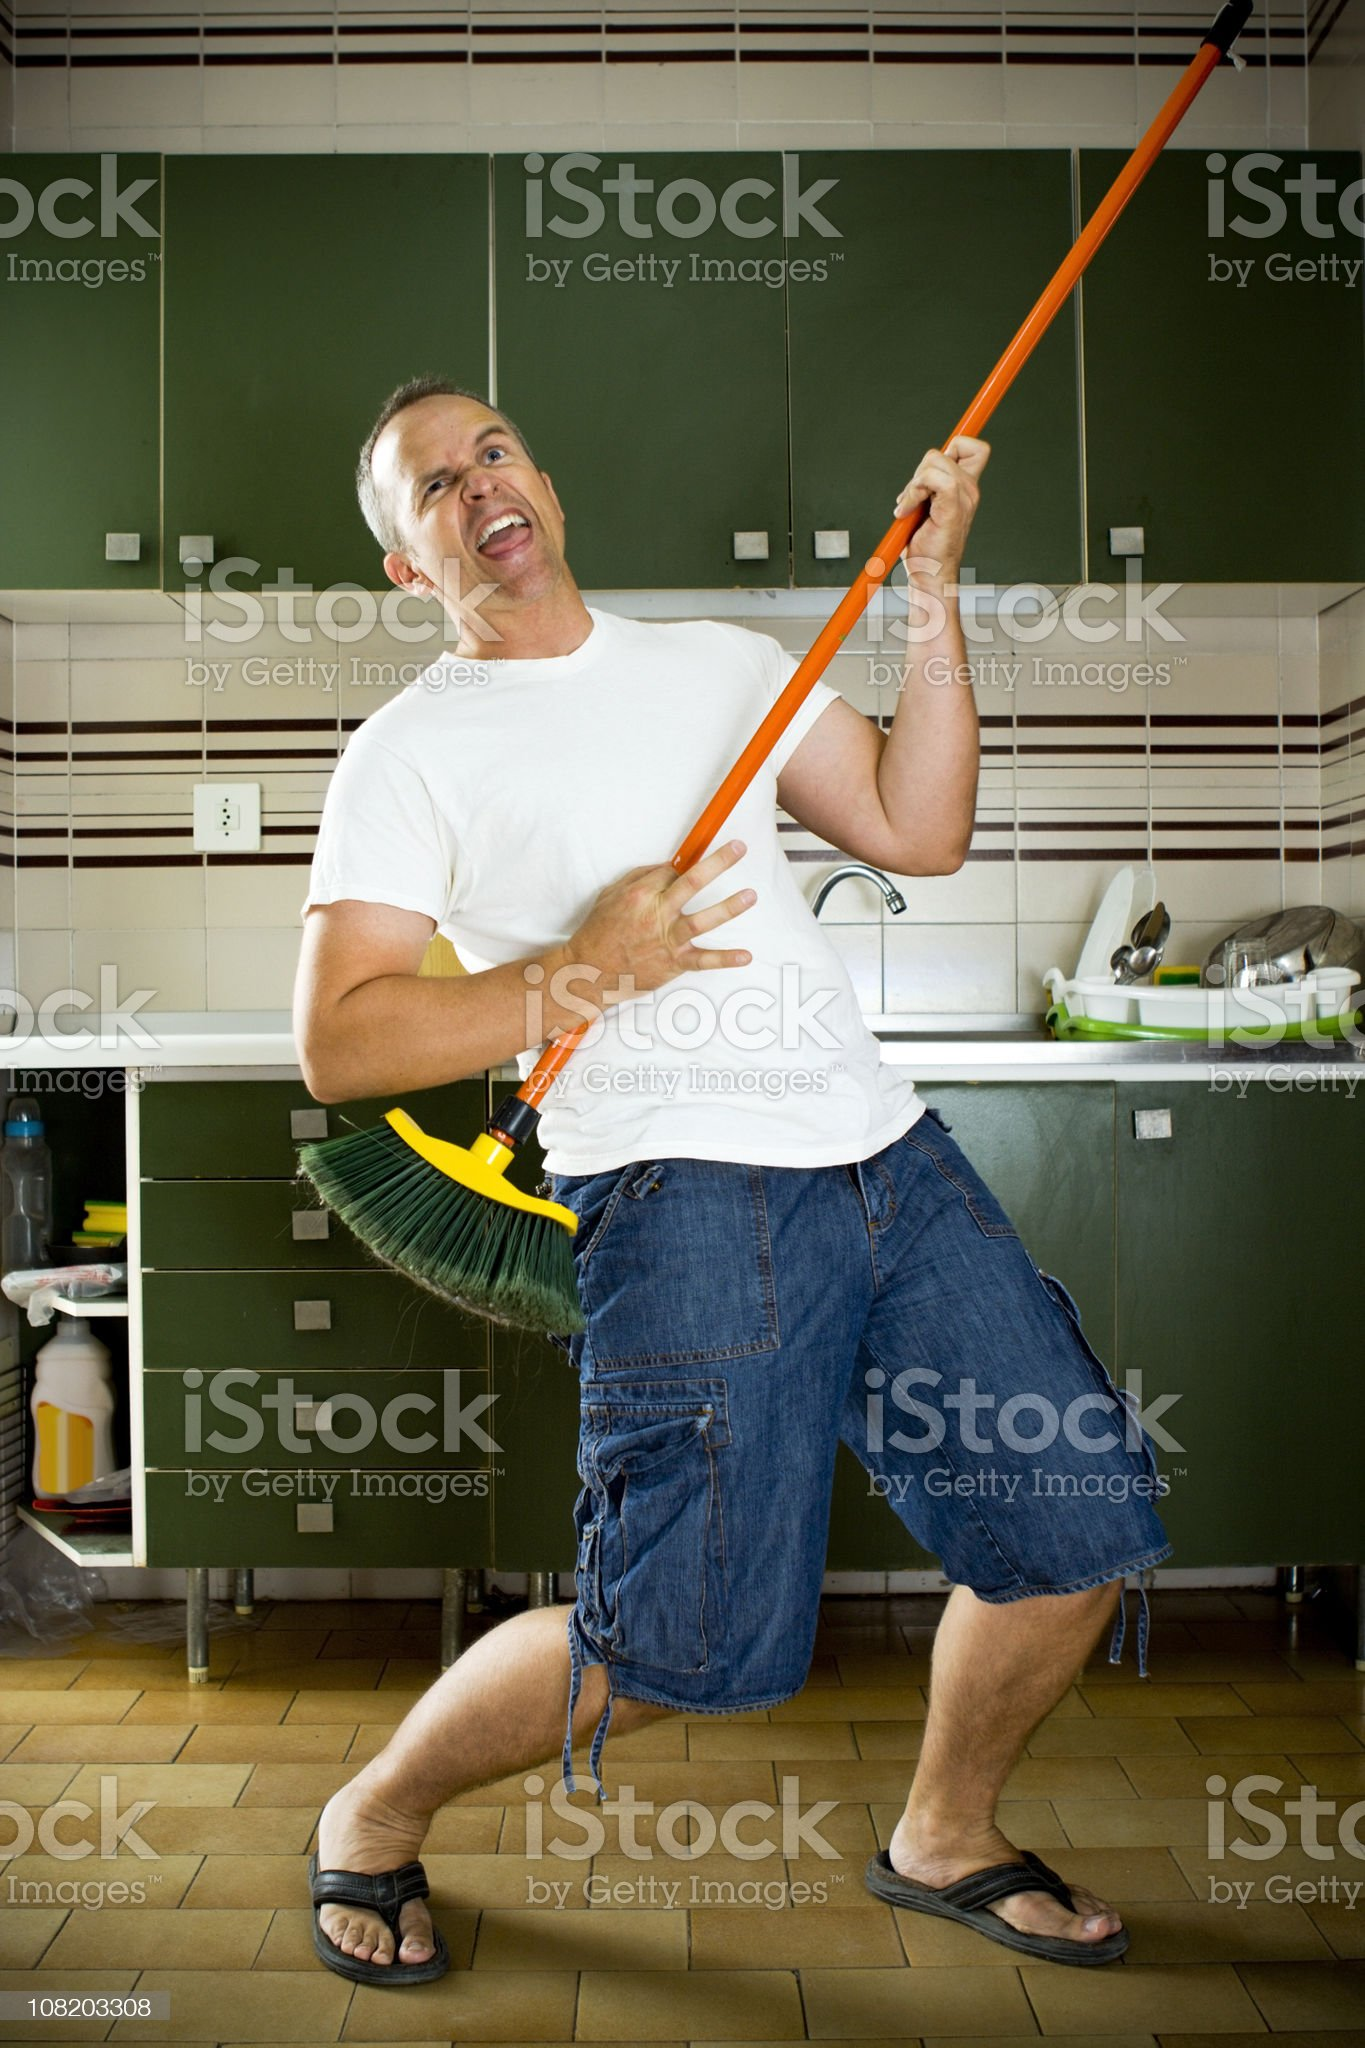 Broom Guitar royalty-free stock photo